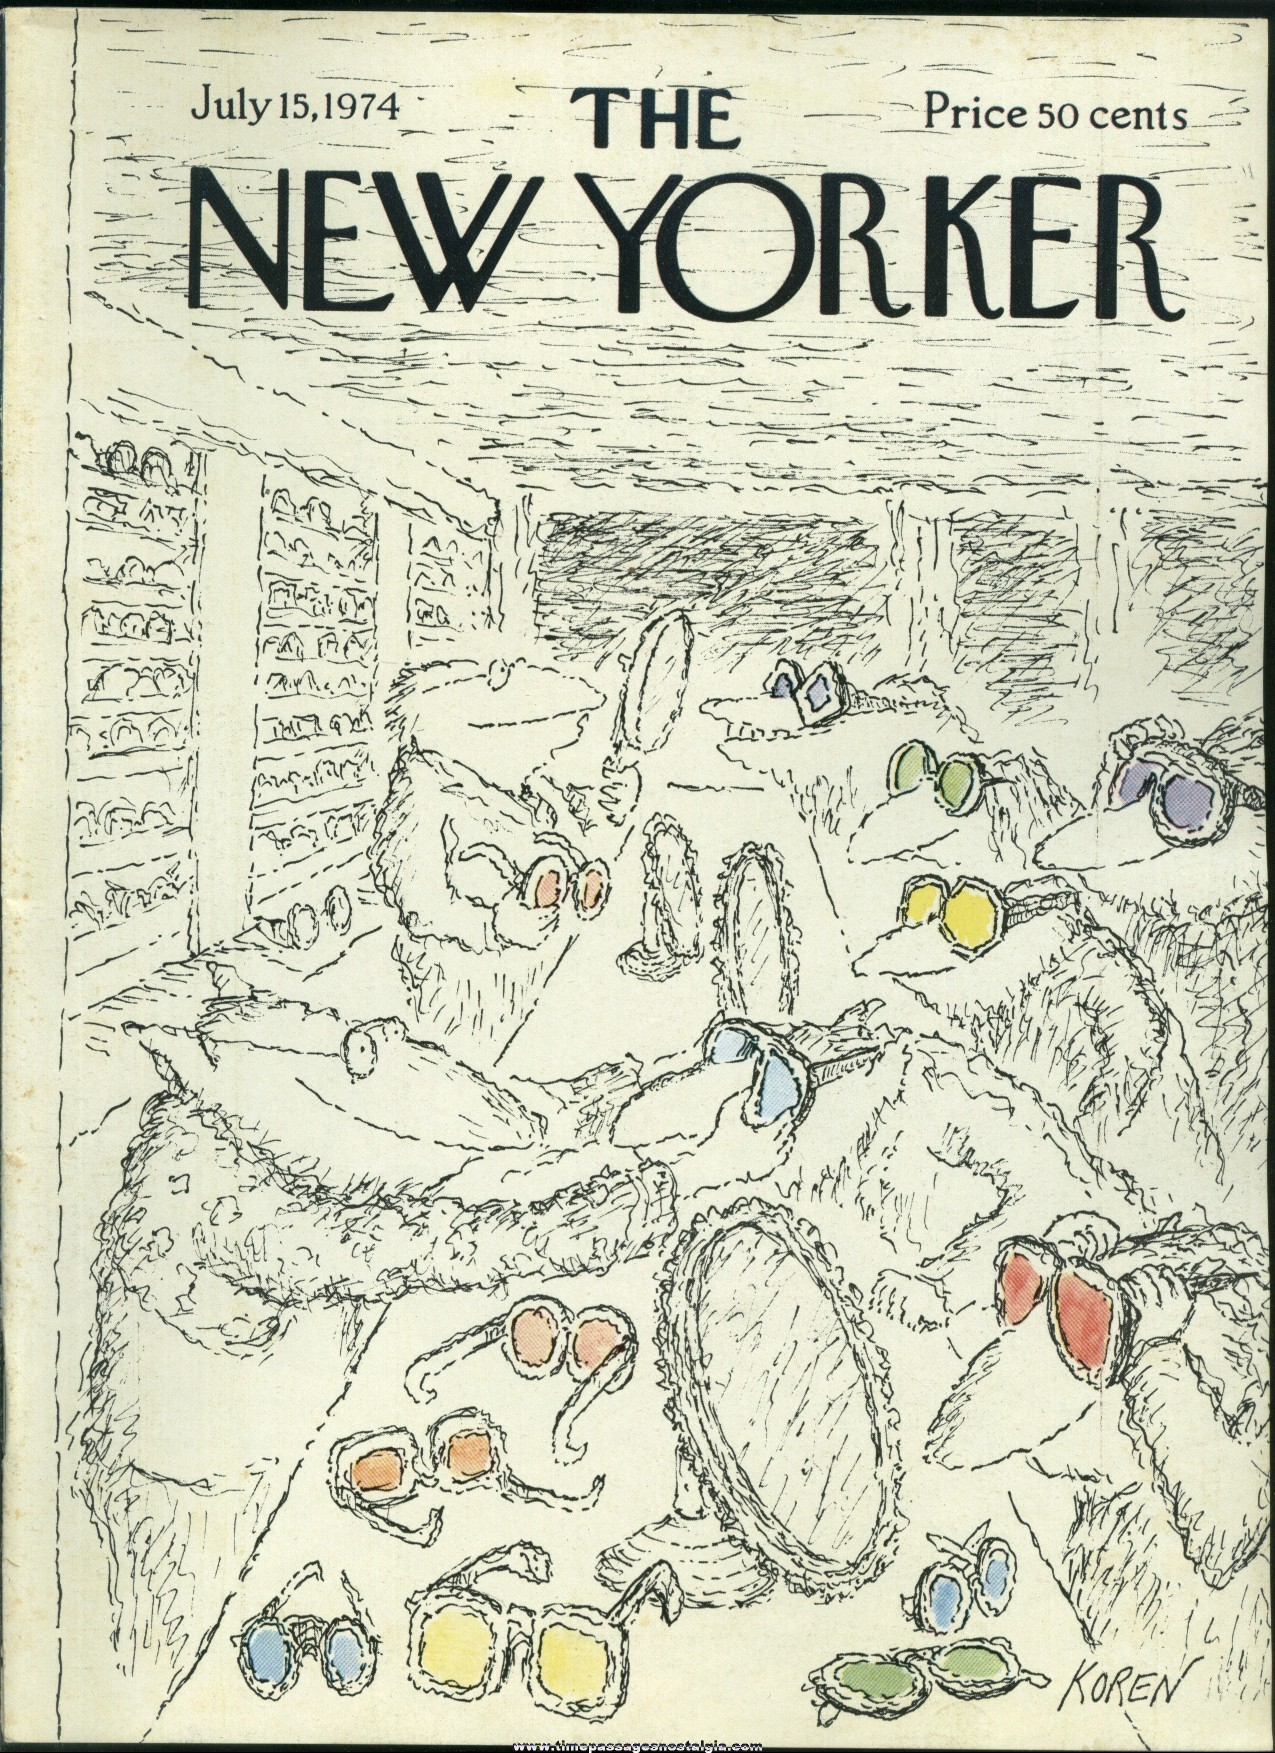 New Yorker Magazine - July 15, 1974 - Cover by Edward Koren